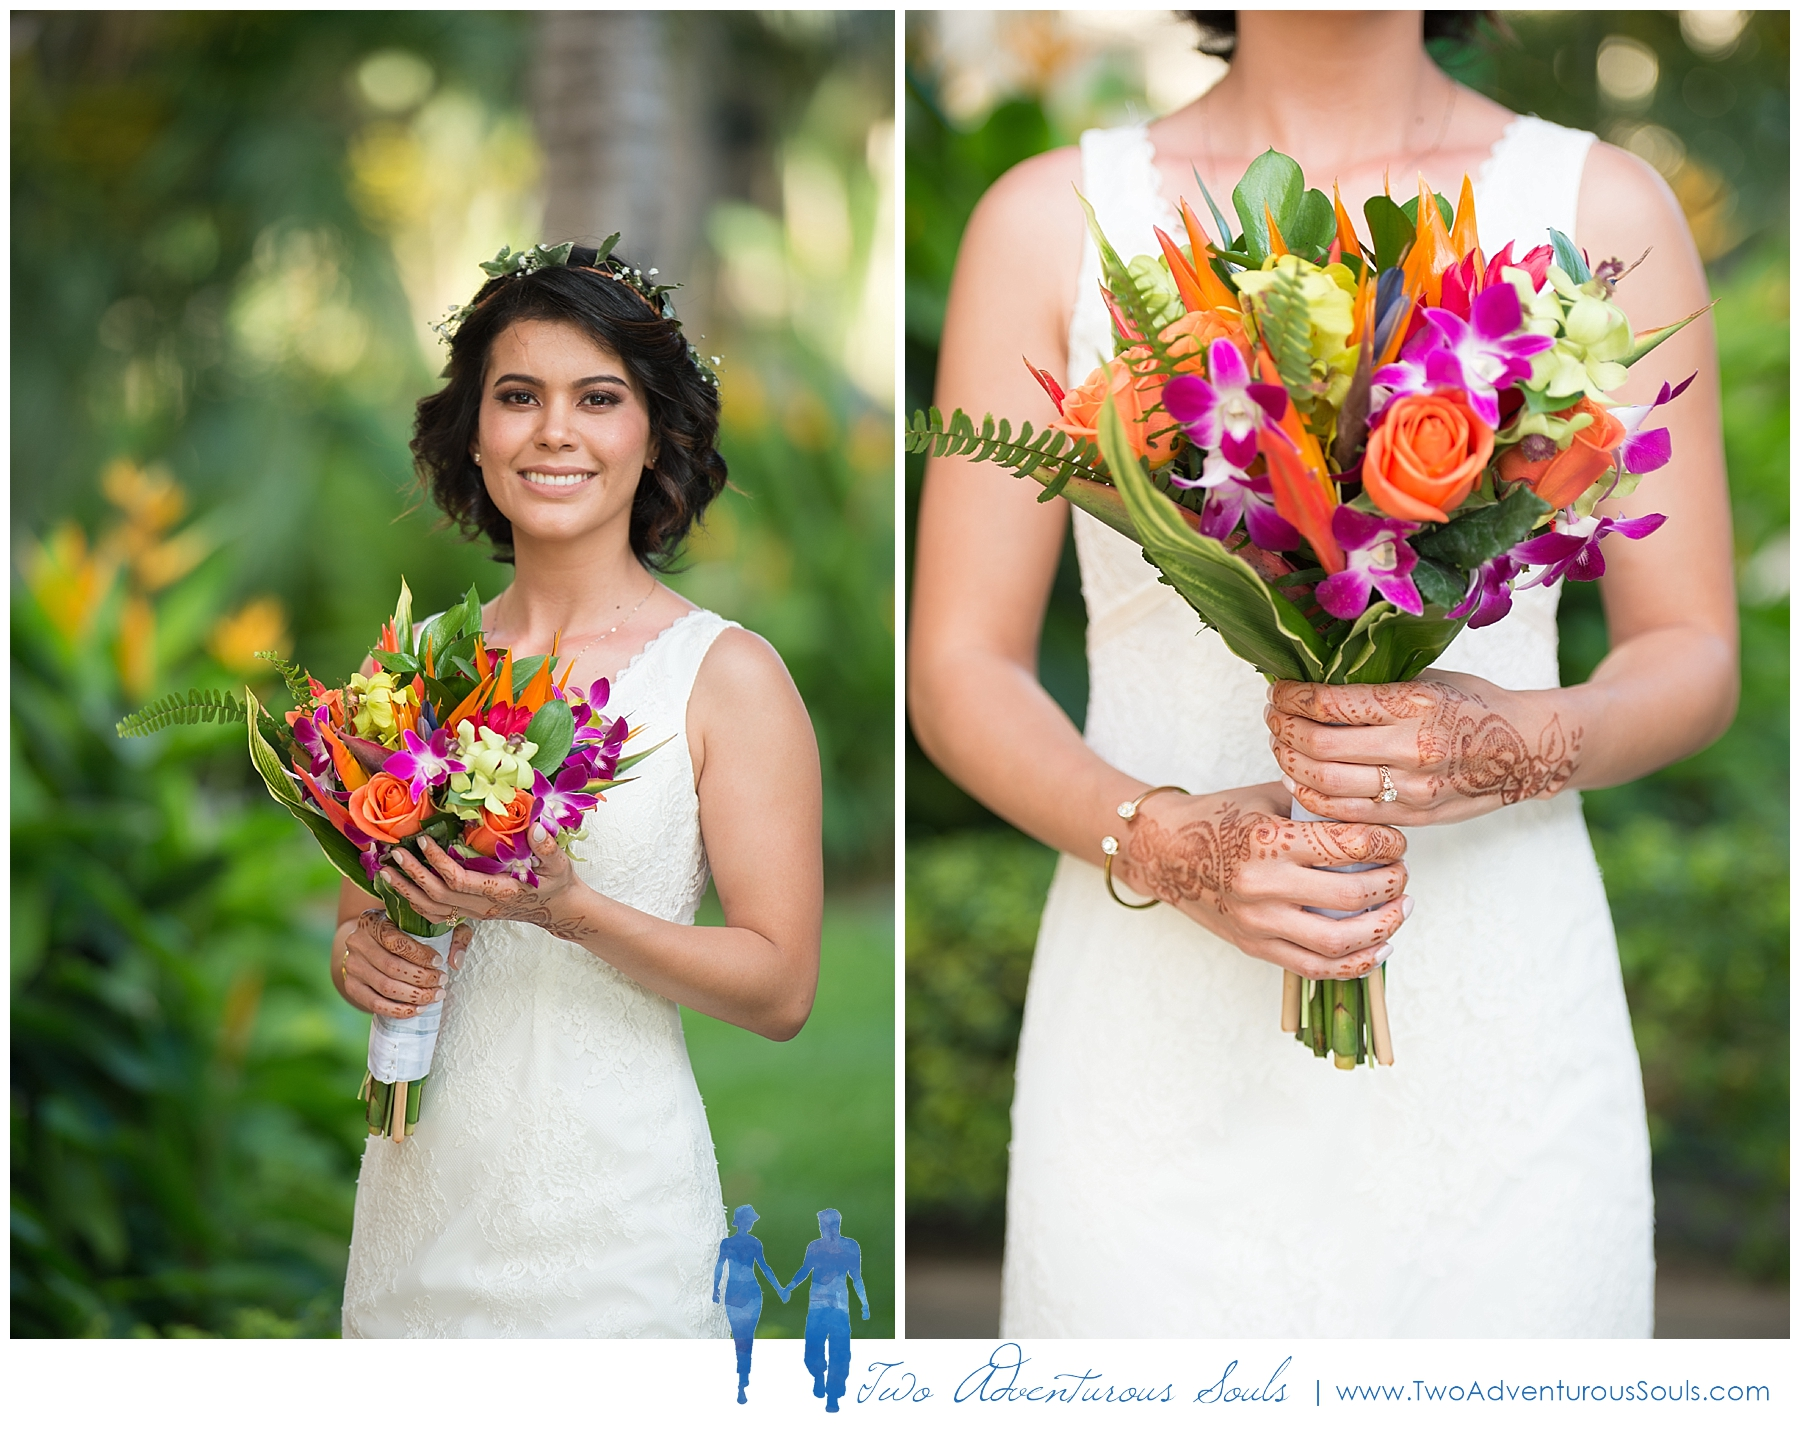 Playa Flamingo Wedding, Costa Rica Wedding Photographers - Two Adventurous Souls_0001